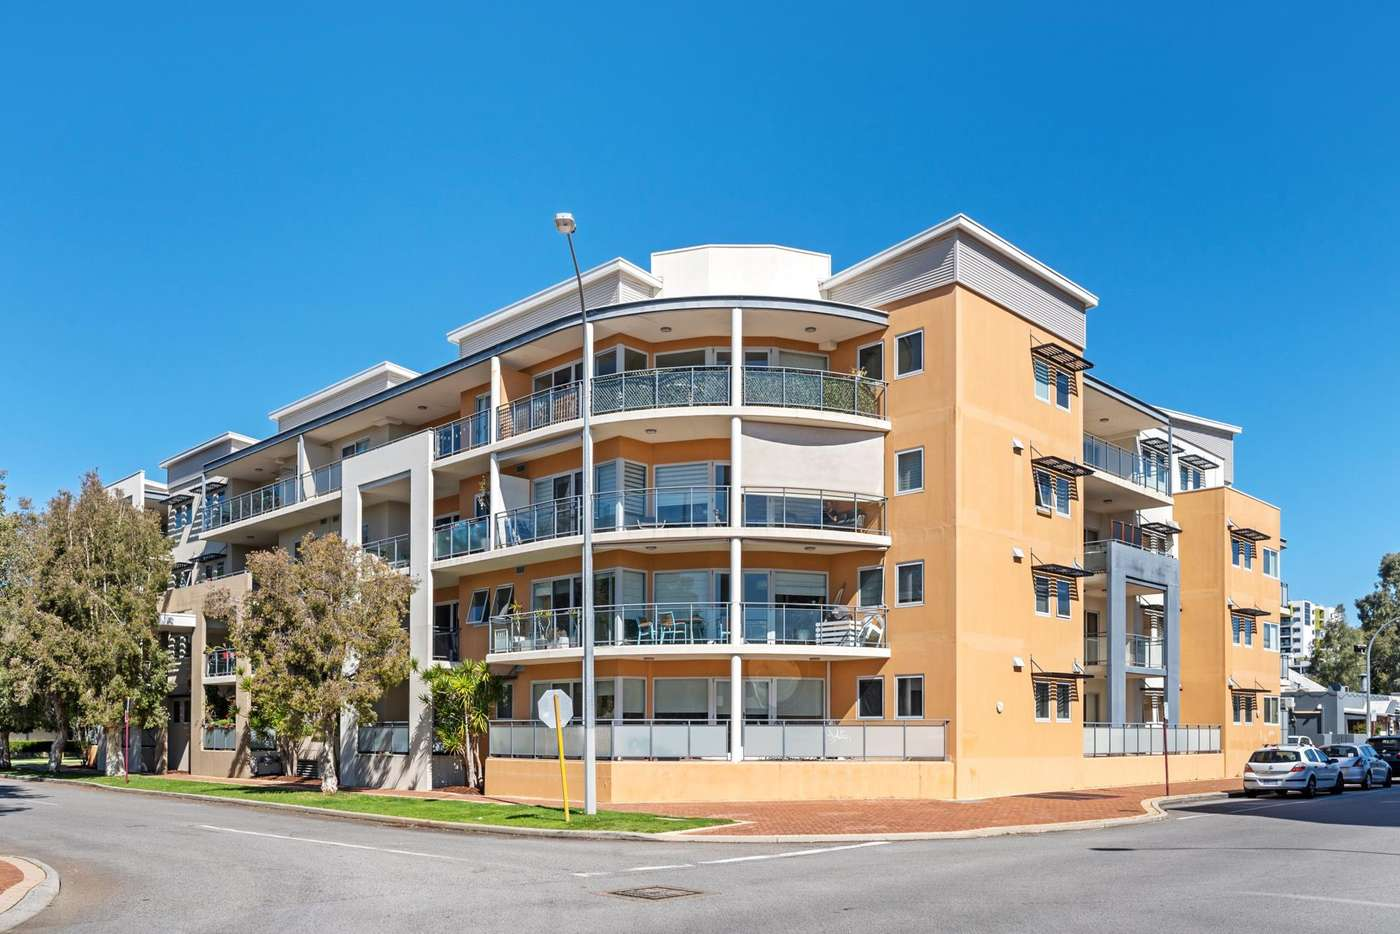 Main view of Homely apartment listing, 10/59 Brewer Street, Perth WA 6000